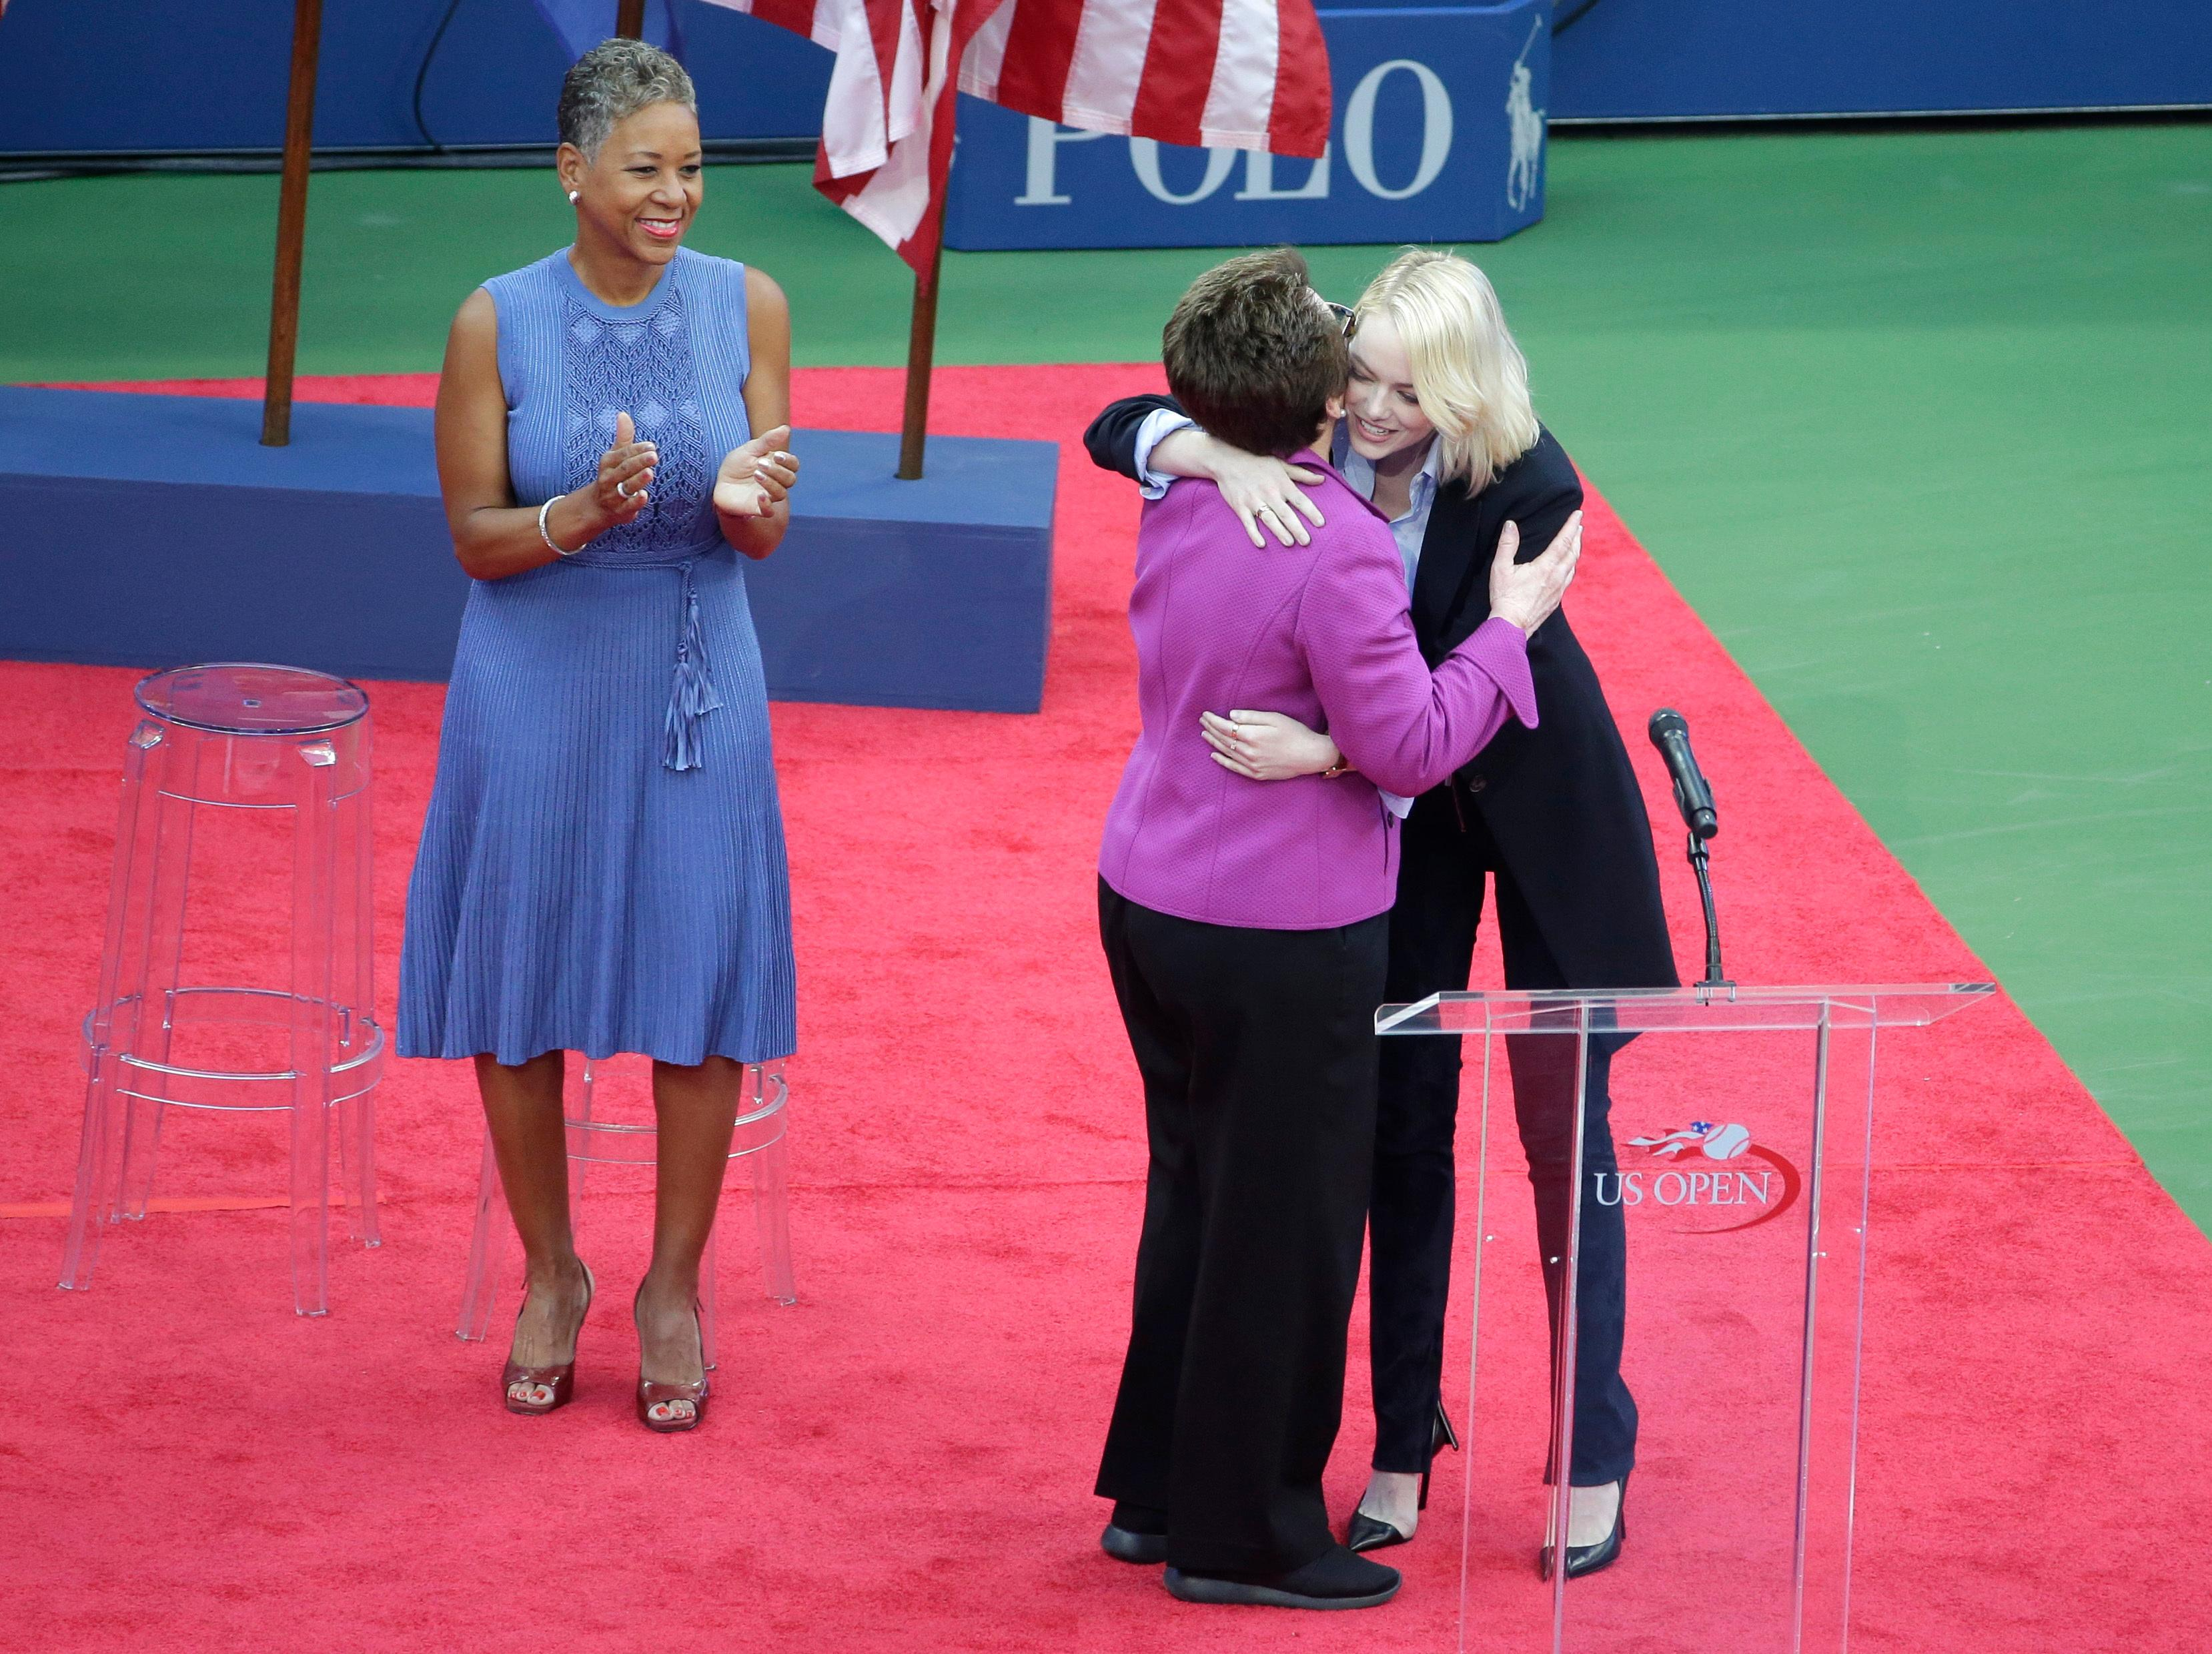 Actress Emma Stone, right, hugs Billie Jean King as USTA CEO Katrina Adams looks on before the start of the women's singles championship match between Sloane Stephens, of the United States, and Madison Keys, of the United States, at the U.S. Open tennis tournament, Saturday, Sept. 9, 2017, in New York. (AP Photo/Seth Wenig)